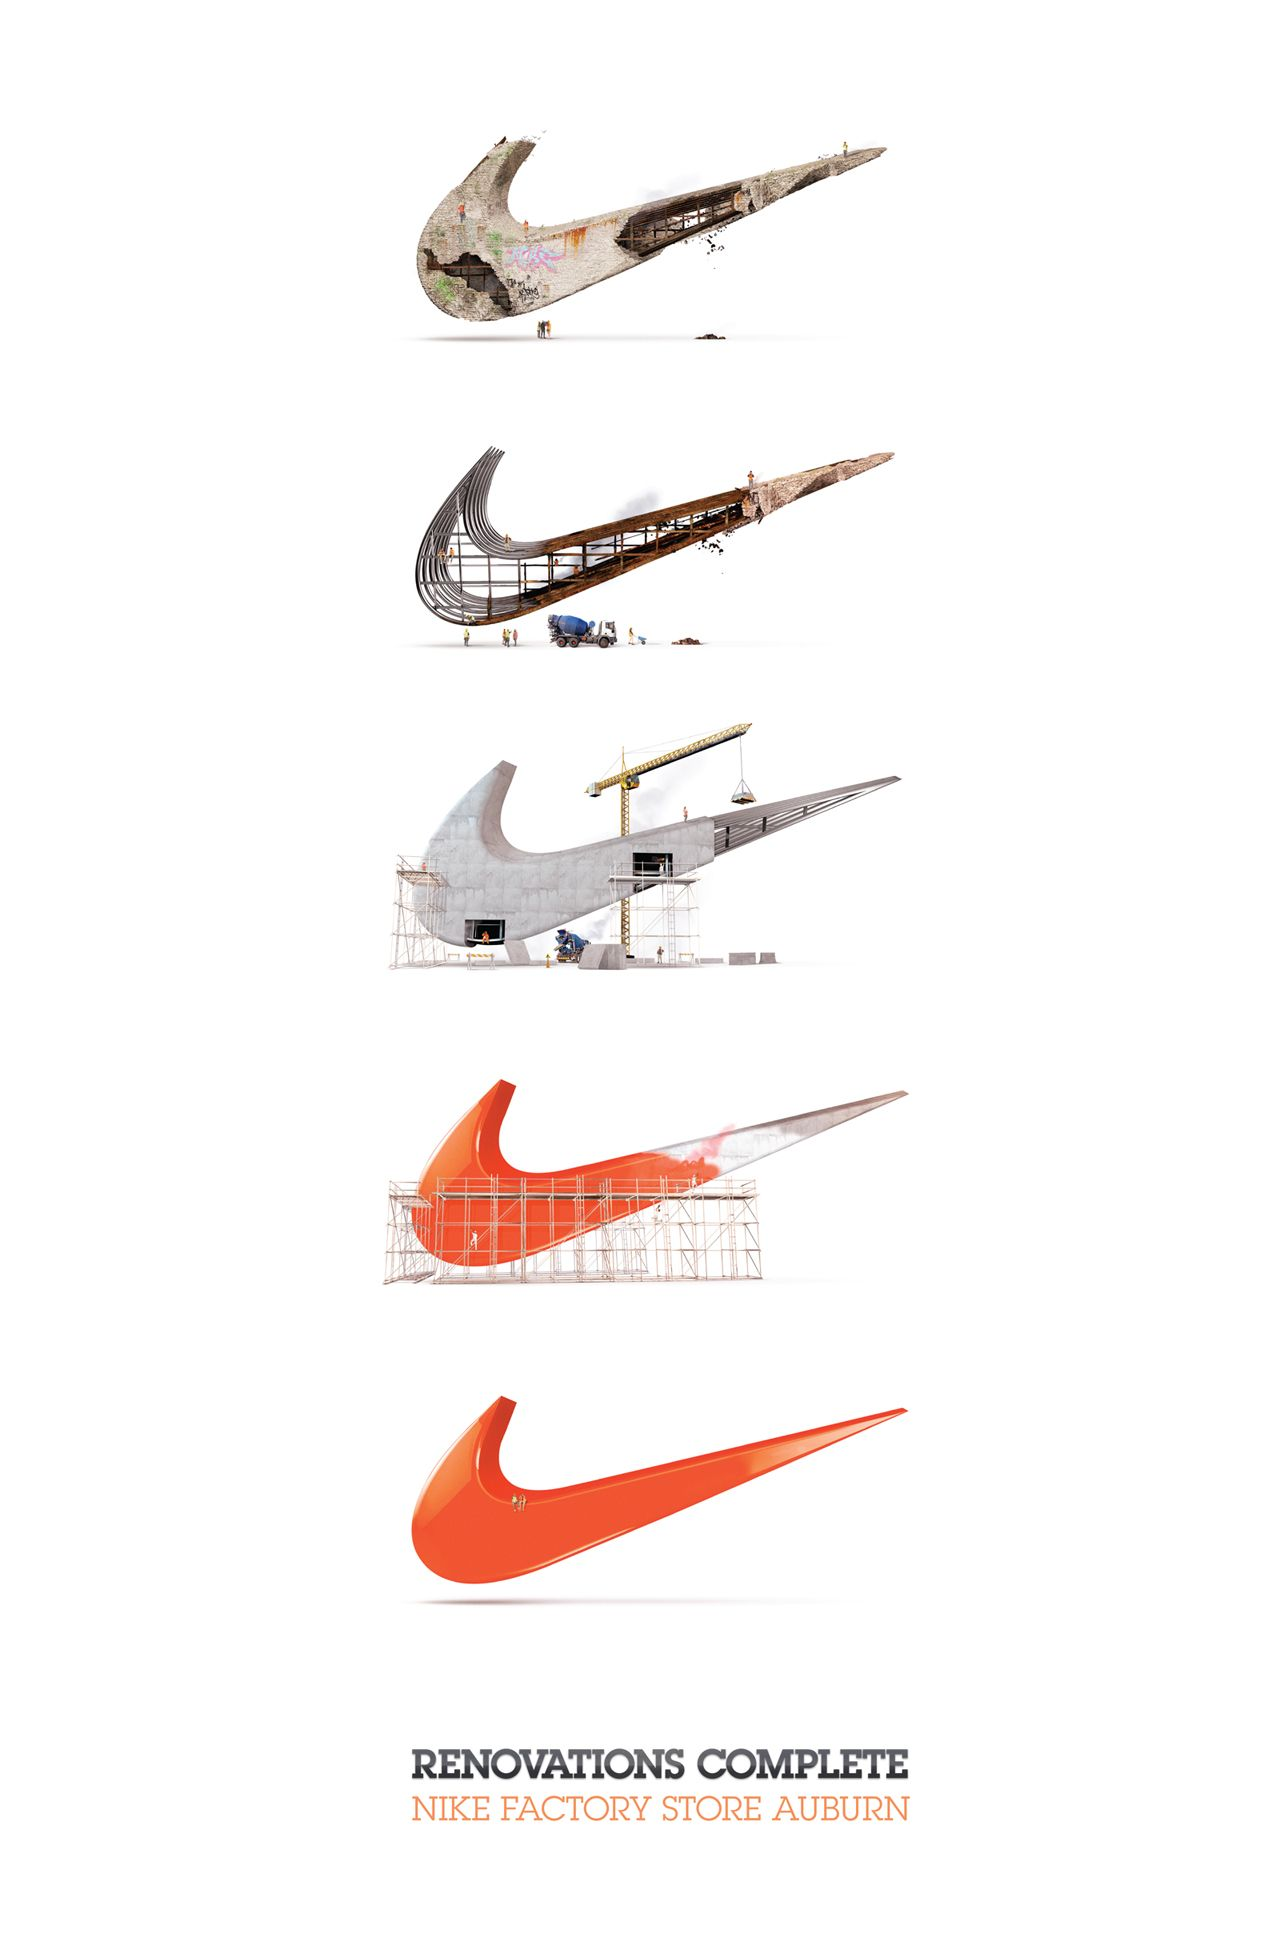 #nike #renovation nike factory